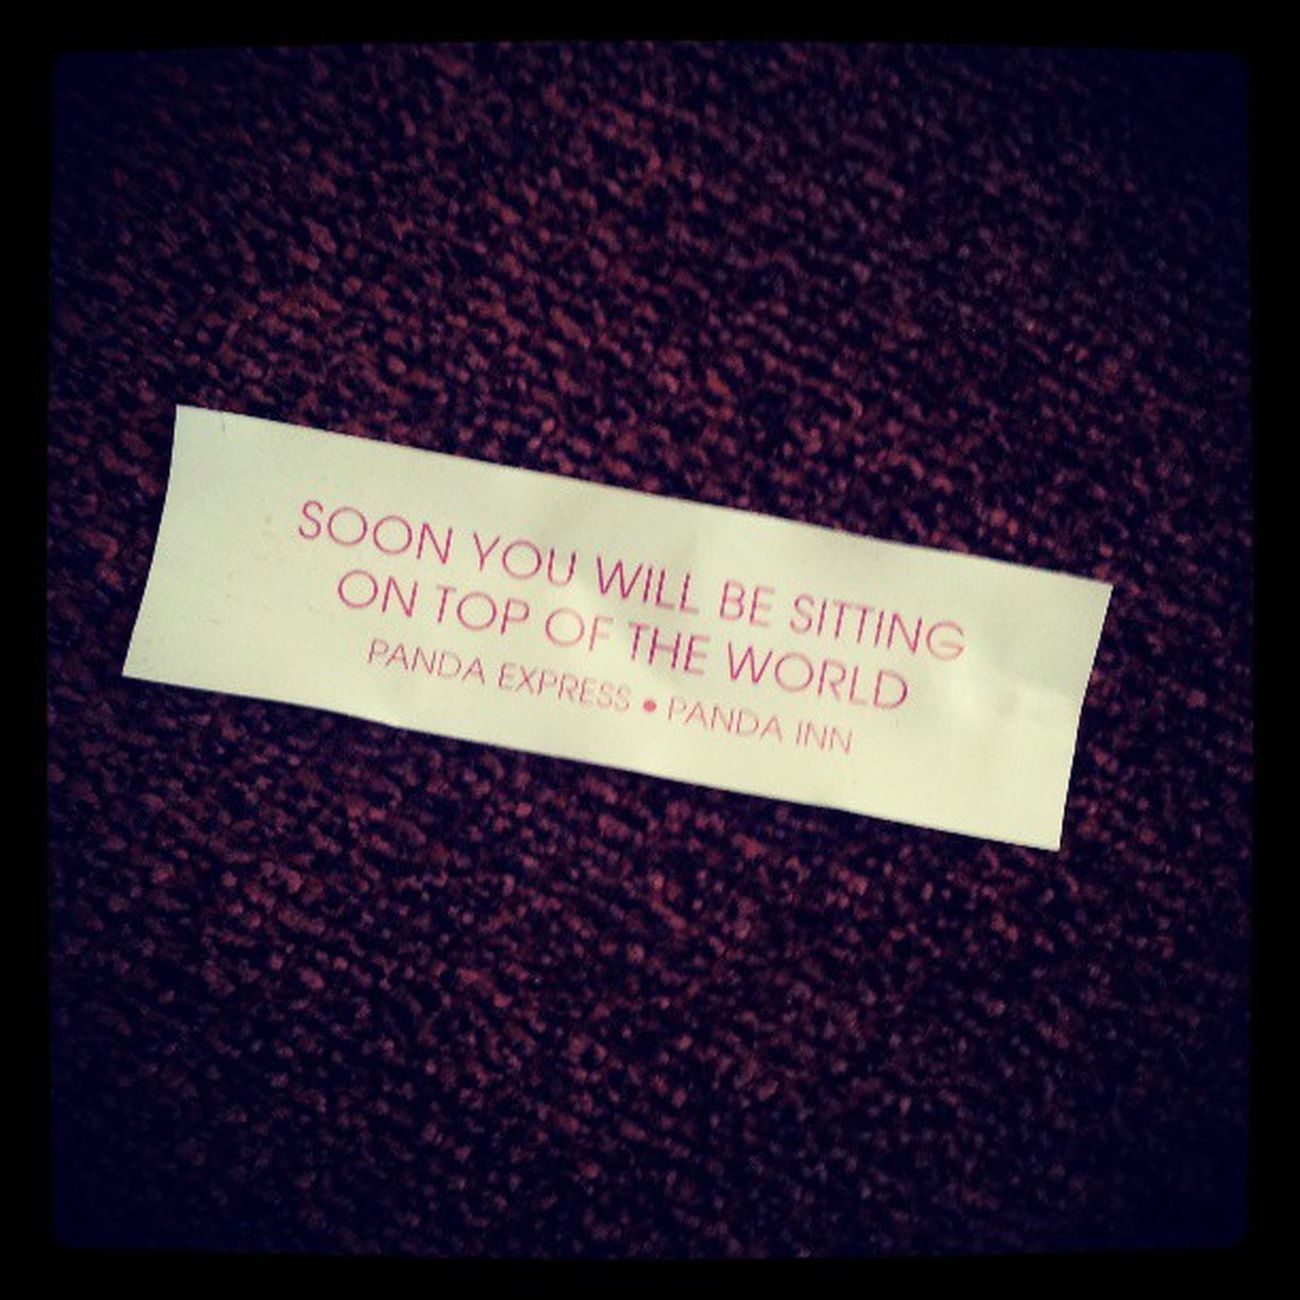 My fortune today from lunch... its a sign.... hell yea!!!! Lets get it HYPE!!!! Aoh HHI2013 Hype Bandits RASCALS HAWAII TEAMUSA